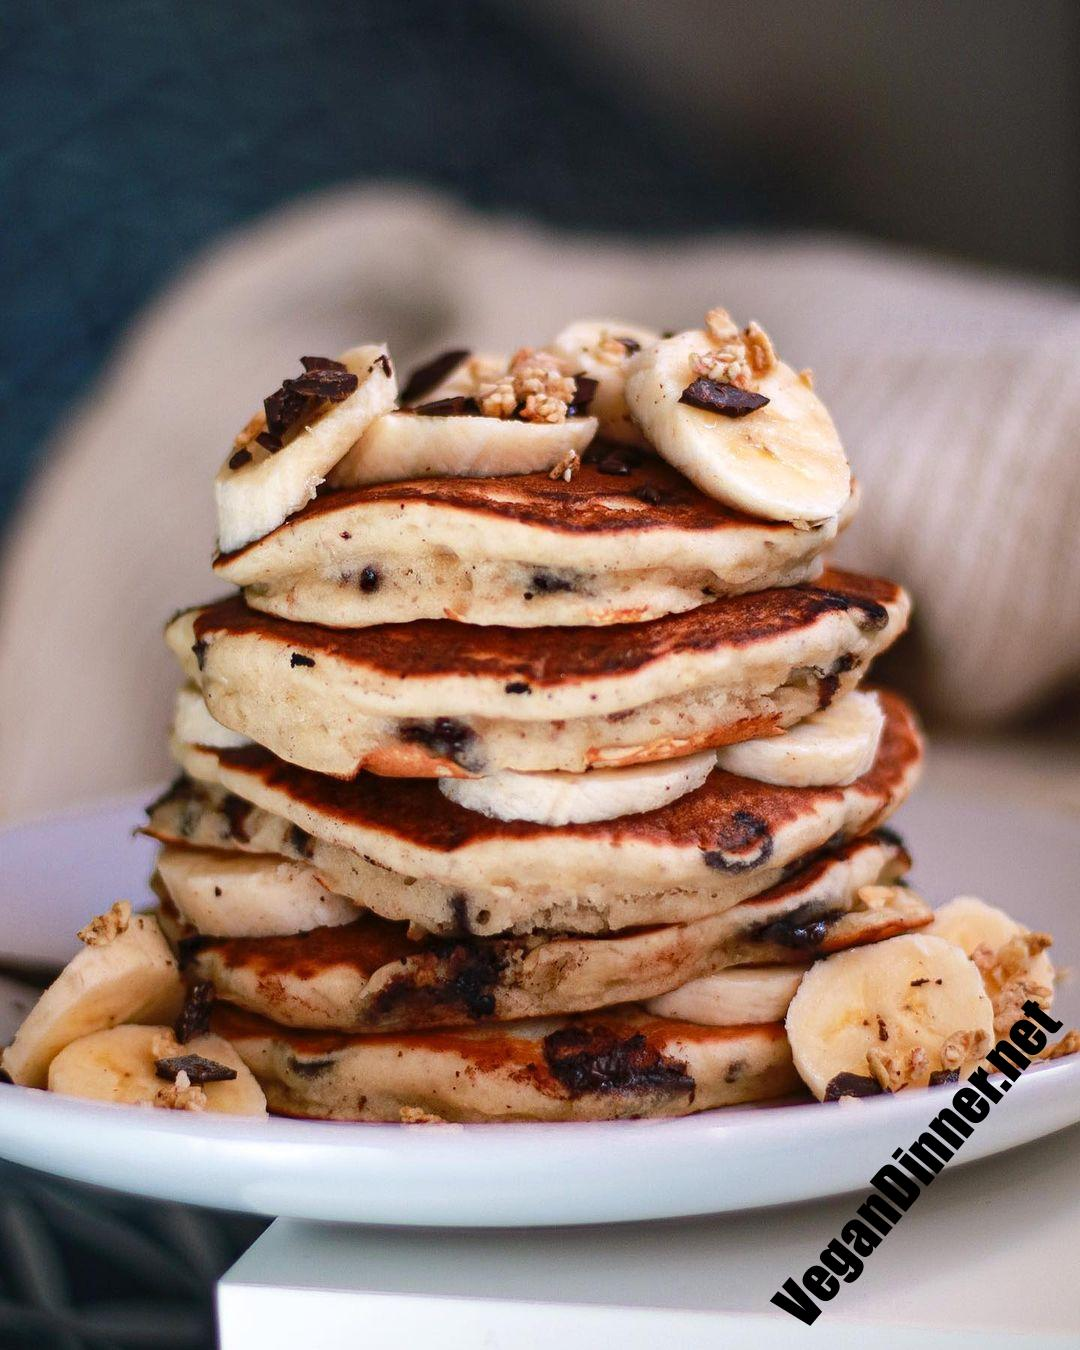 who wants a plate of this fluffy vegan banana chocolate multip img e